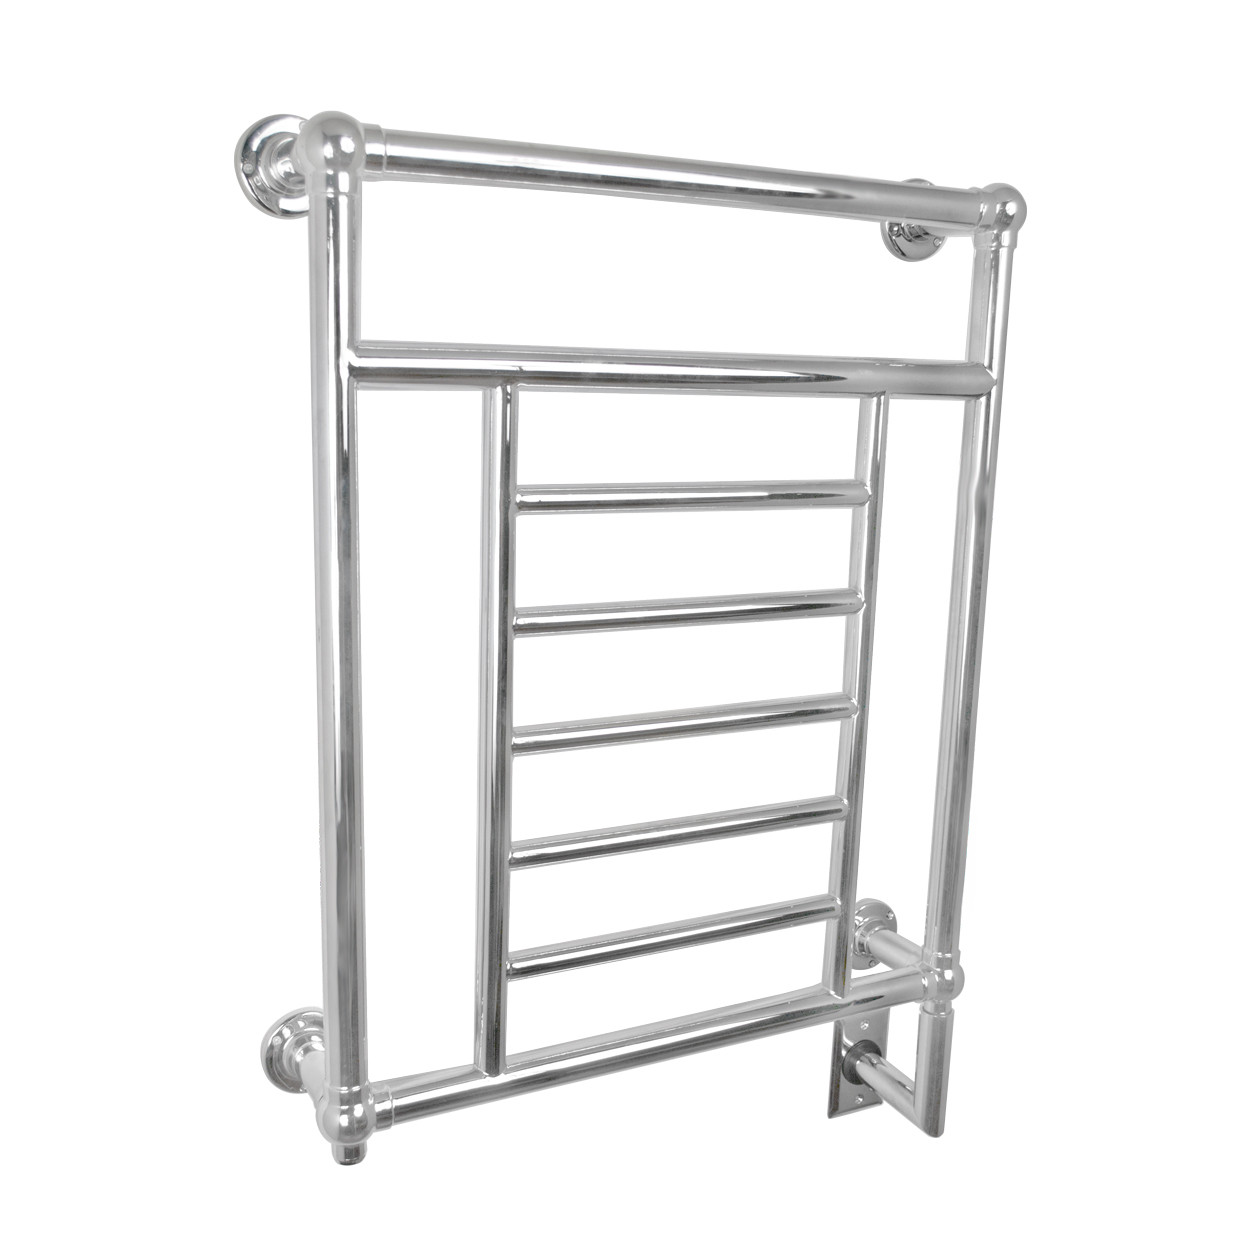 Amba T-2536 P Traditional Wall Mount Electric Towel Warmer In Polished Nickel